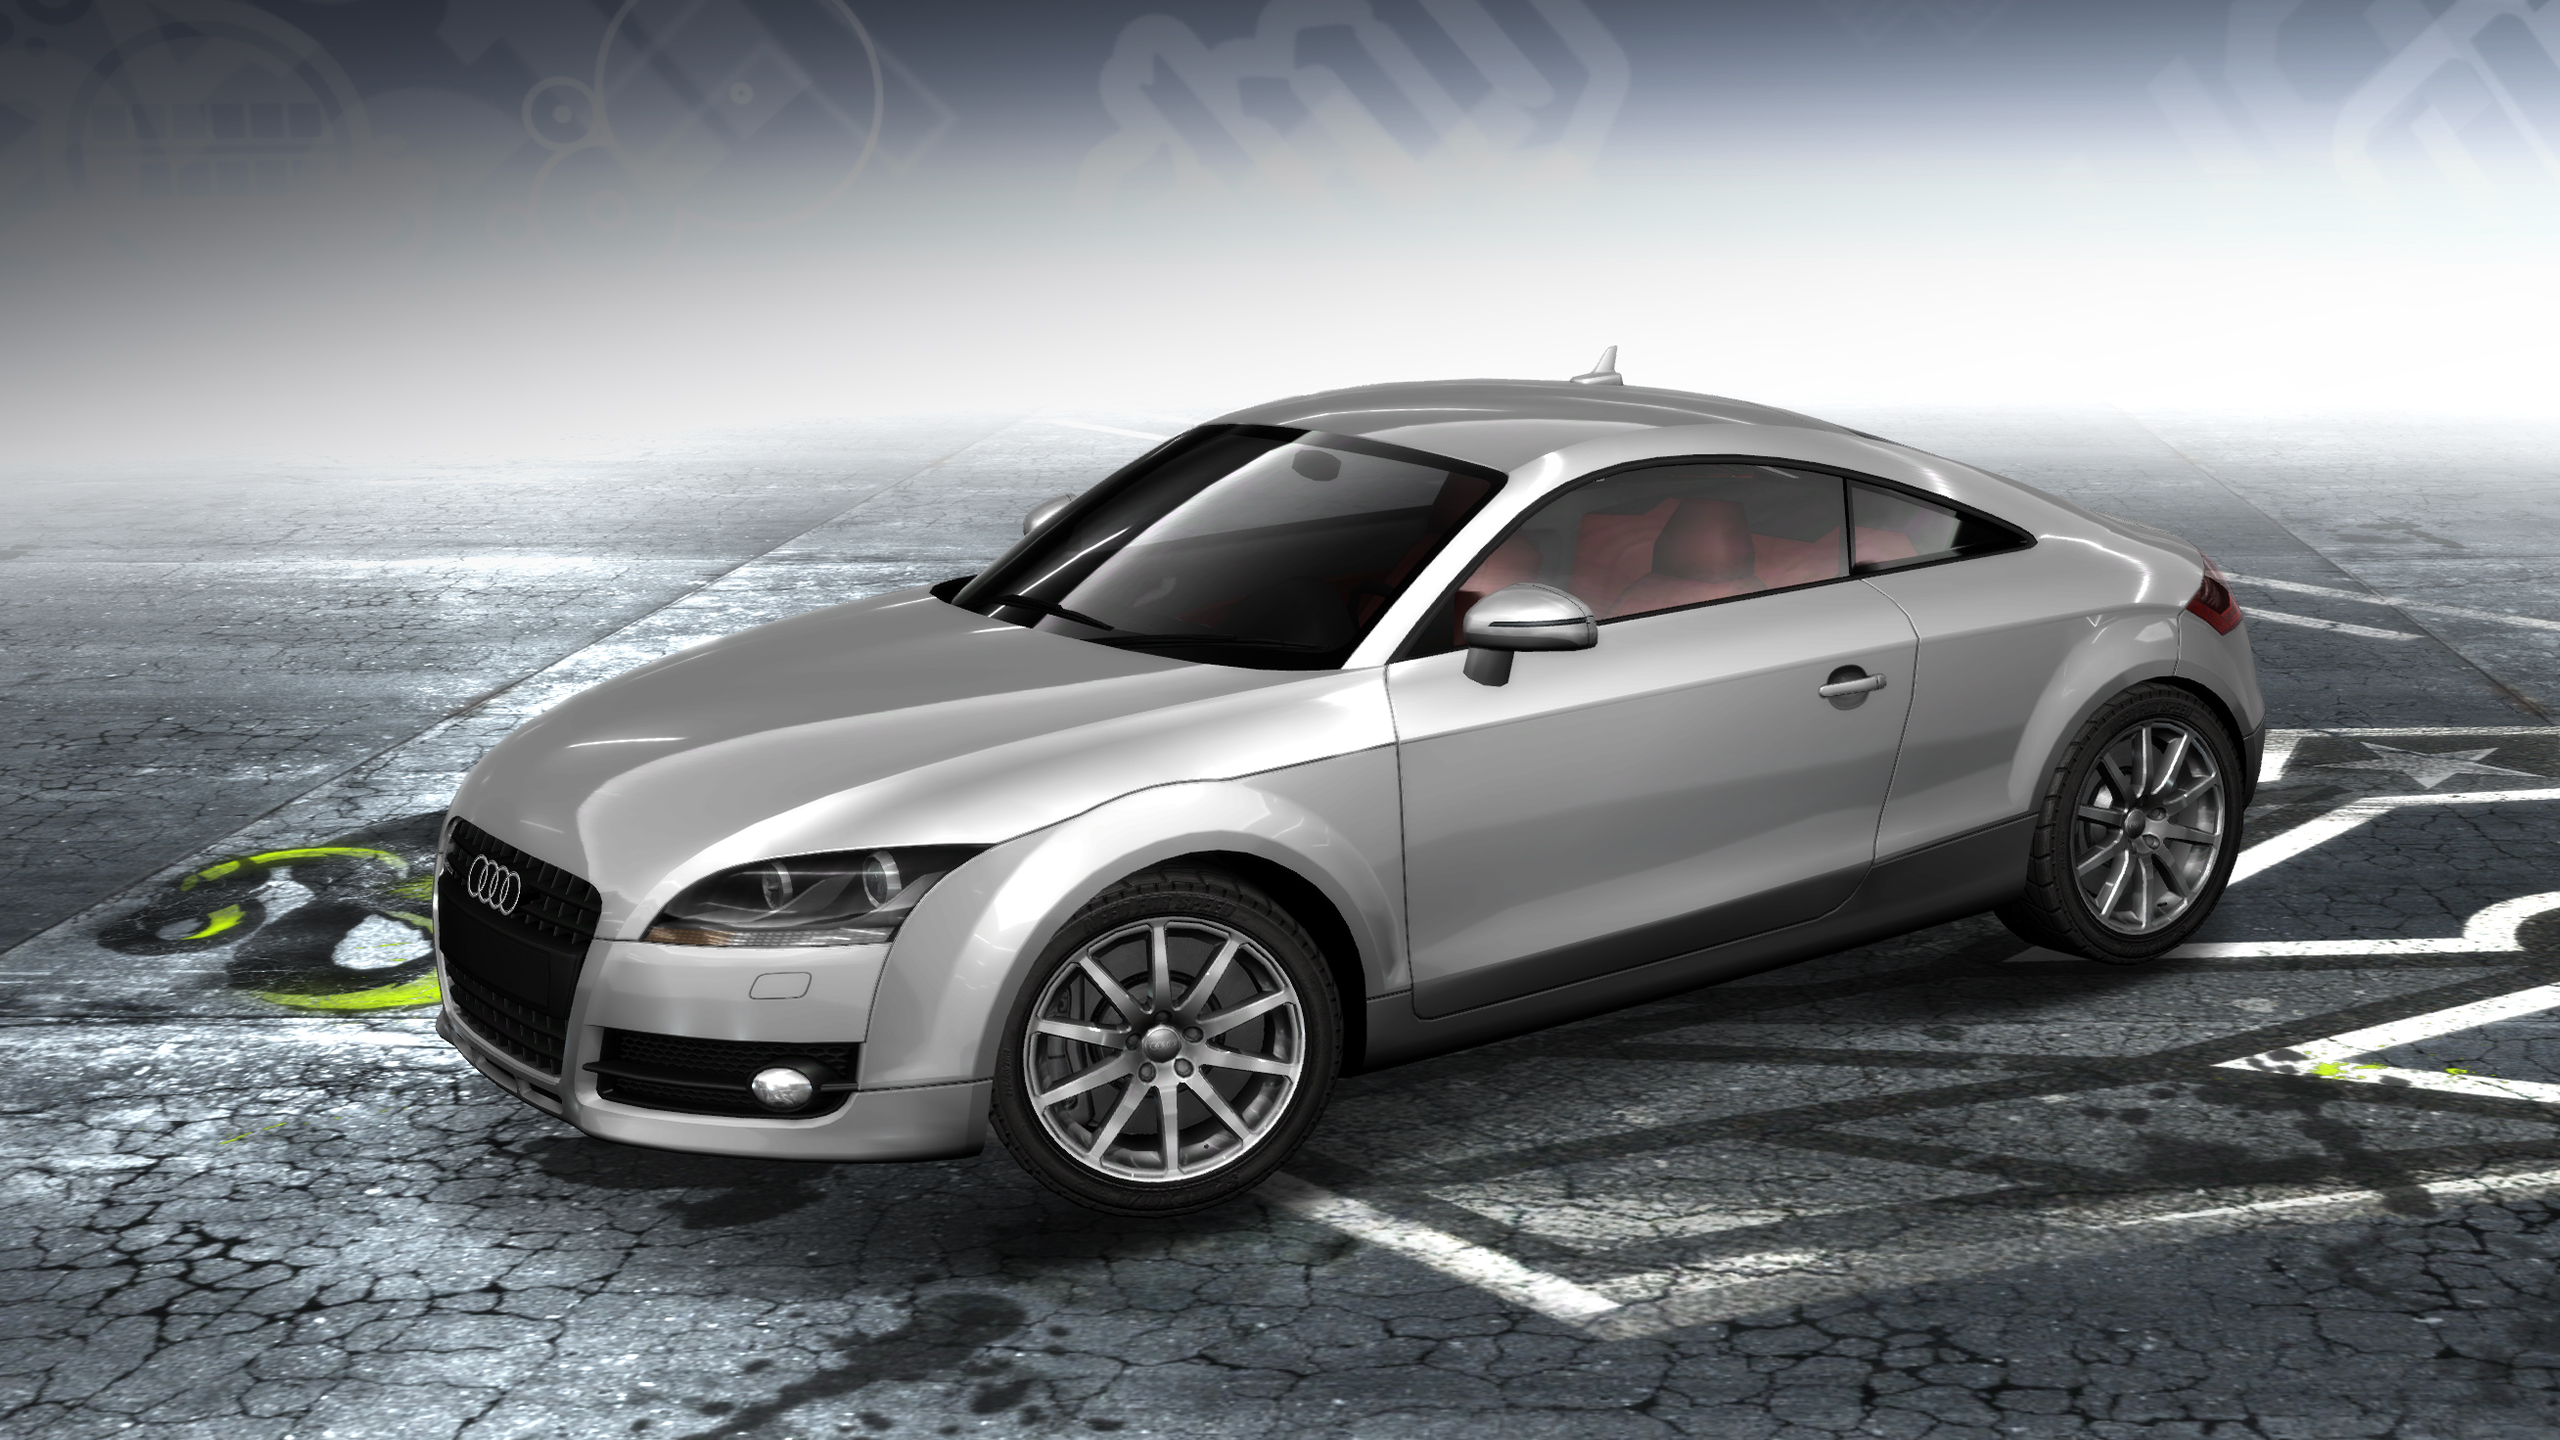 audi tt 3 2 quattro 8j need for speed wiki fandom. Black Bedroom Furniture Sets. Home Design Ideas